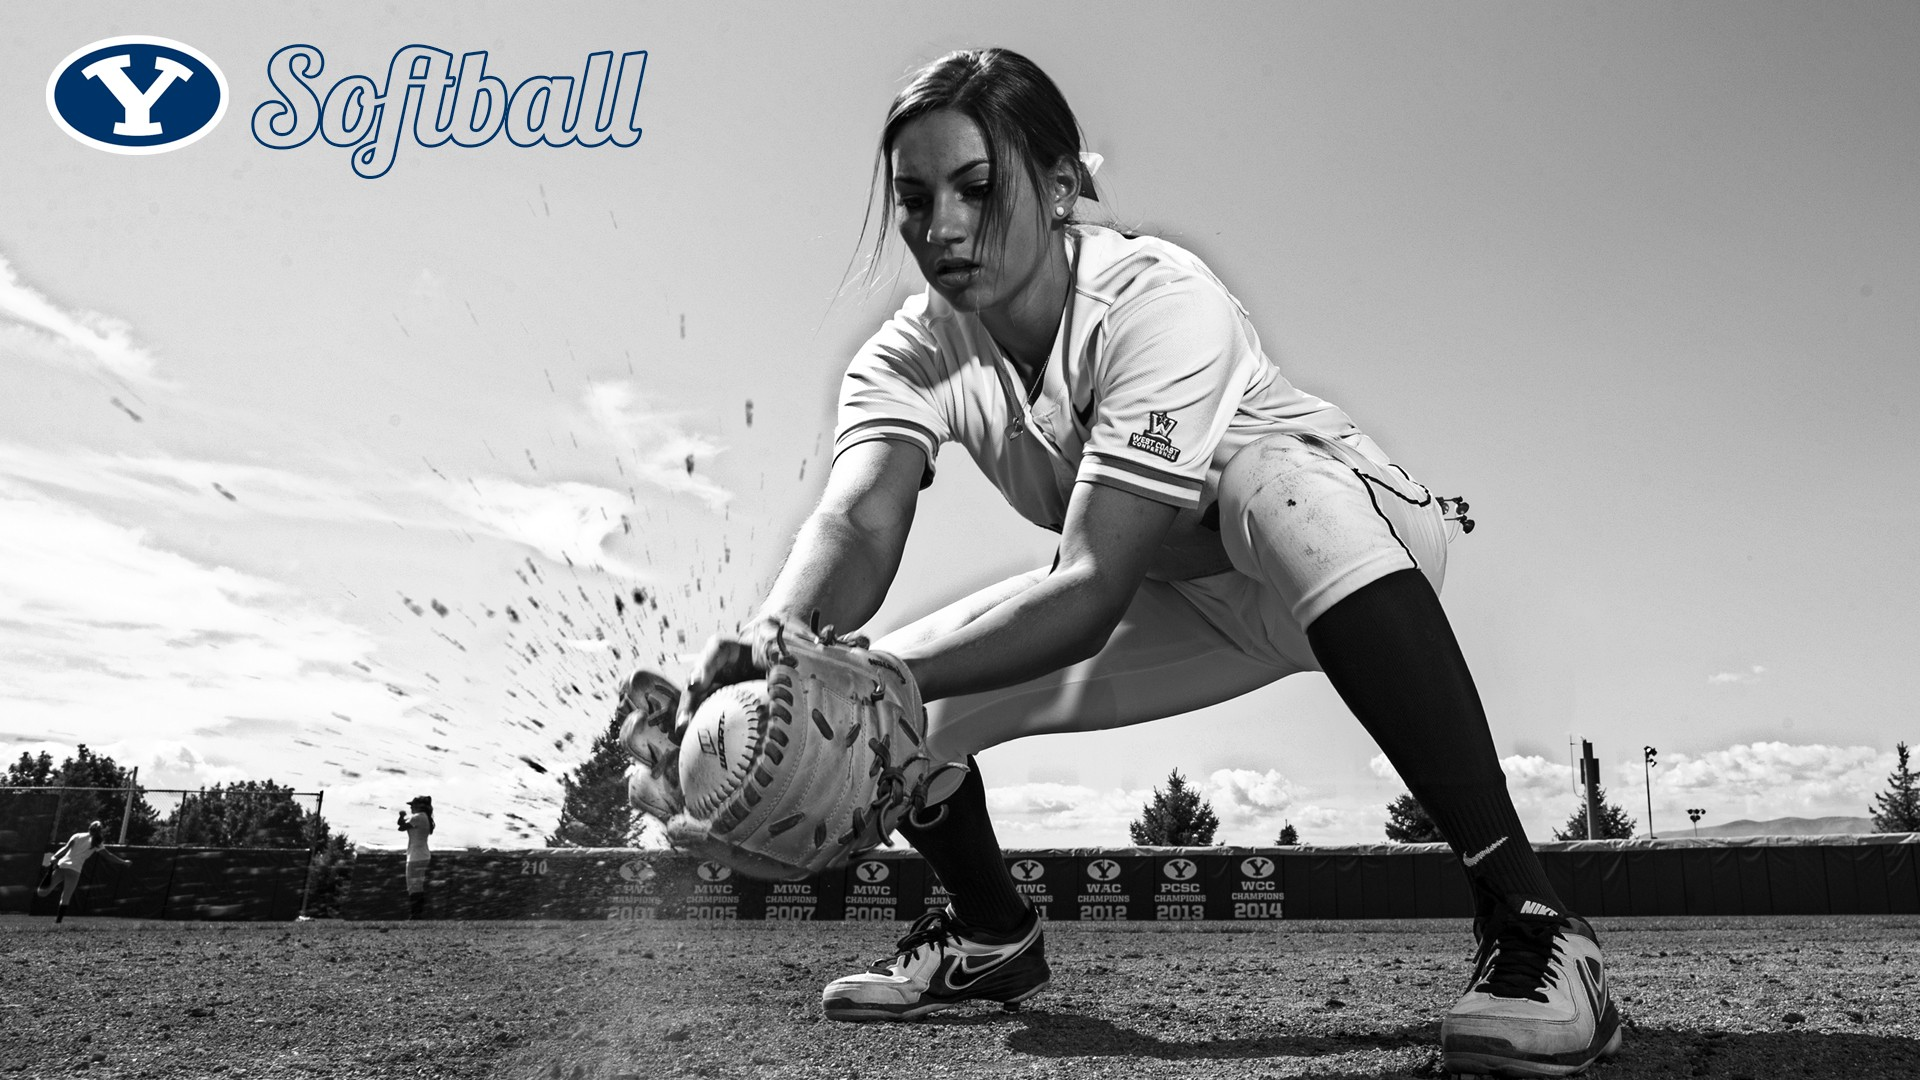 38 Softball Backgrounds Download Free HD Backgrounds